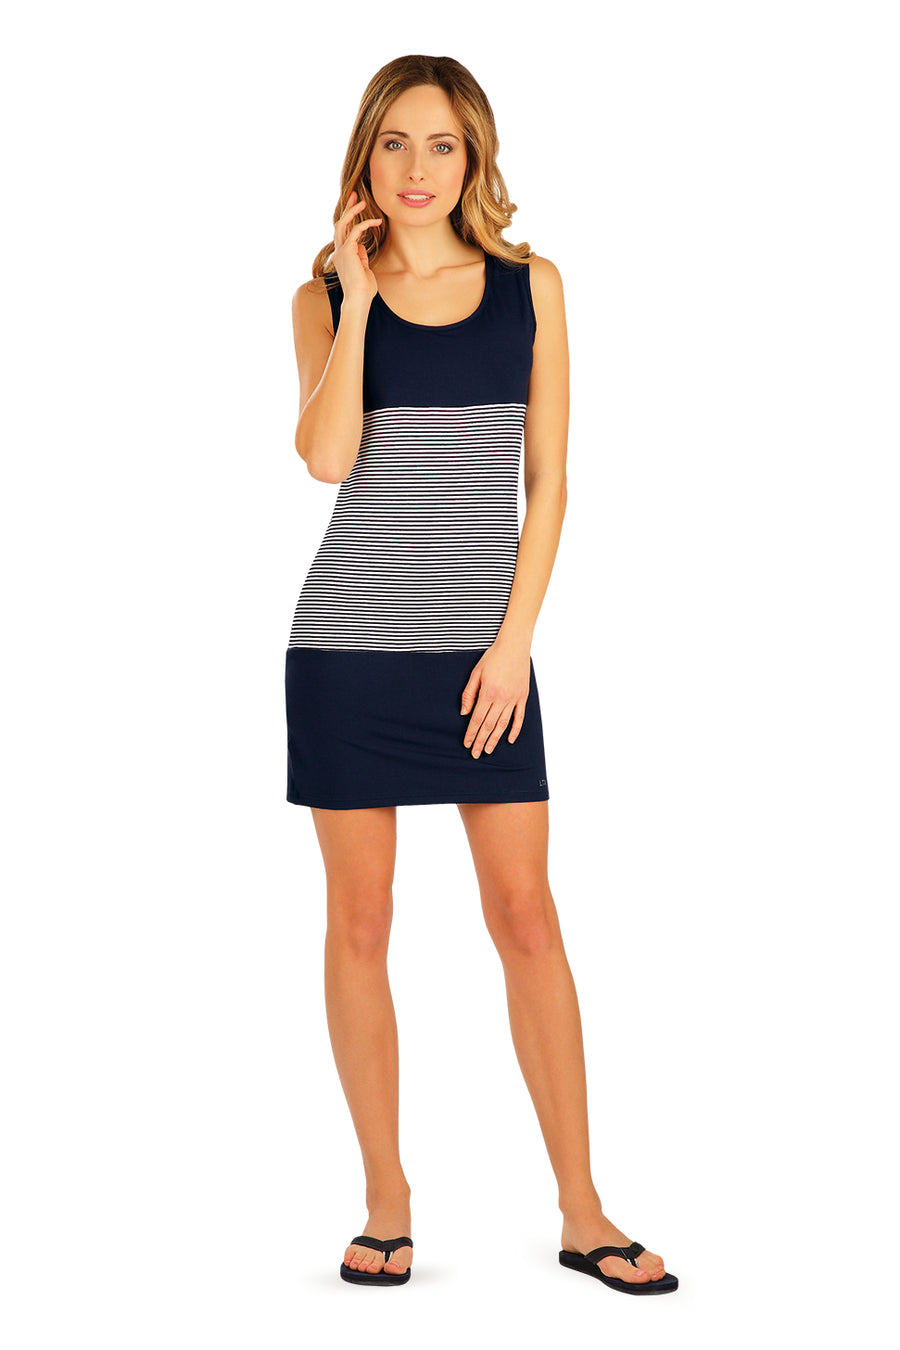 Sleeveless Dress With Navy Blue Stripes - onelike